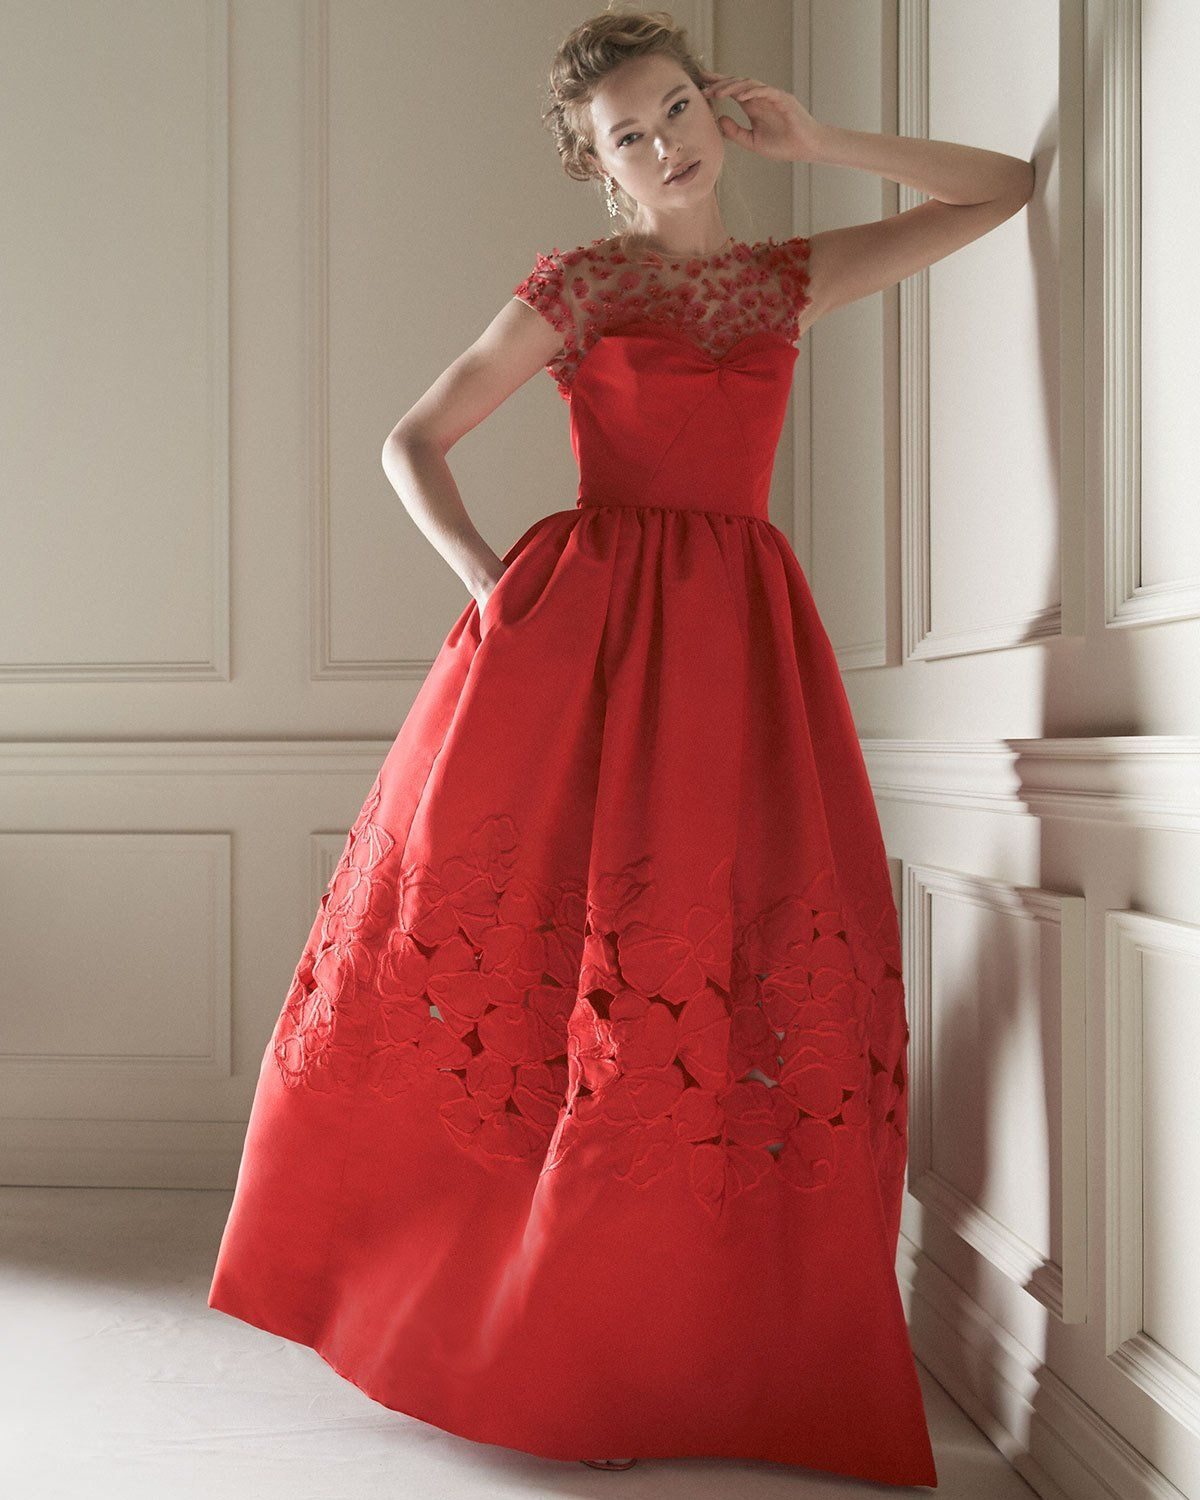 Elegant Embroidery Embellishment Ball Gown Traditional: Oscar De La Renta Floral-Embellished Ball Gown, Cardinal